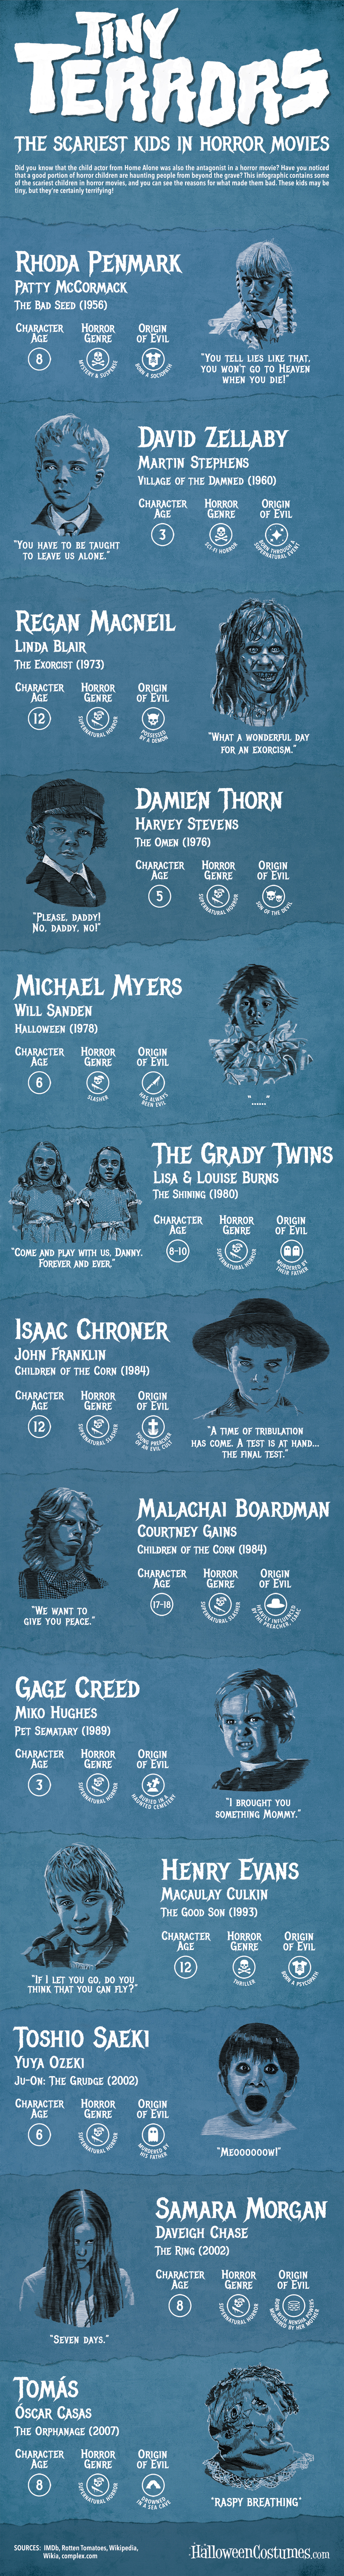 Tiny Terrors: The Scariest Kids in Horror Movies [Infographic]